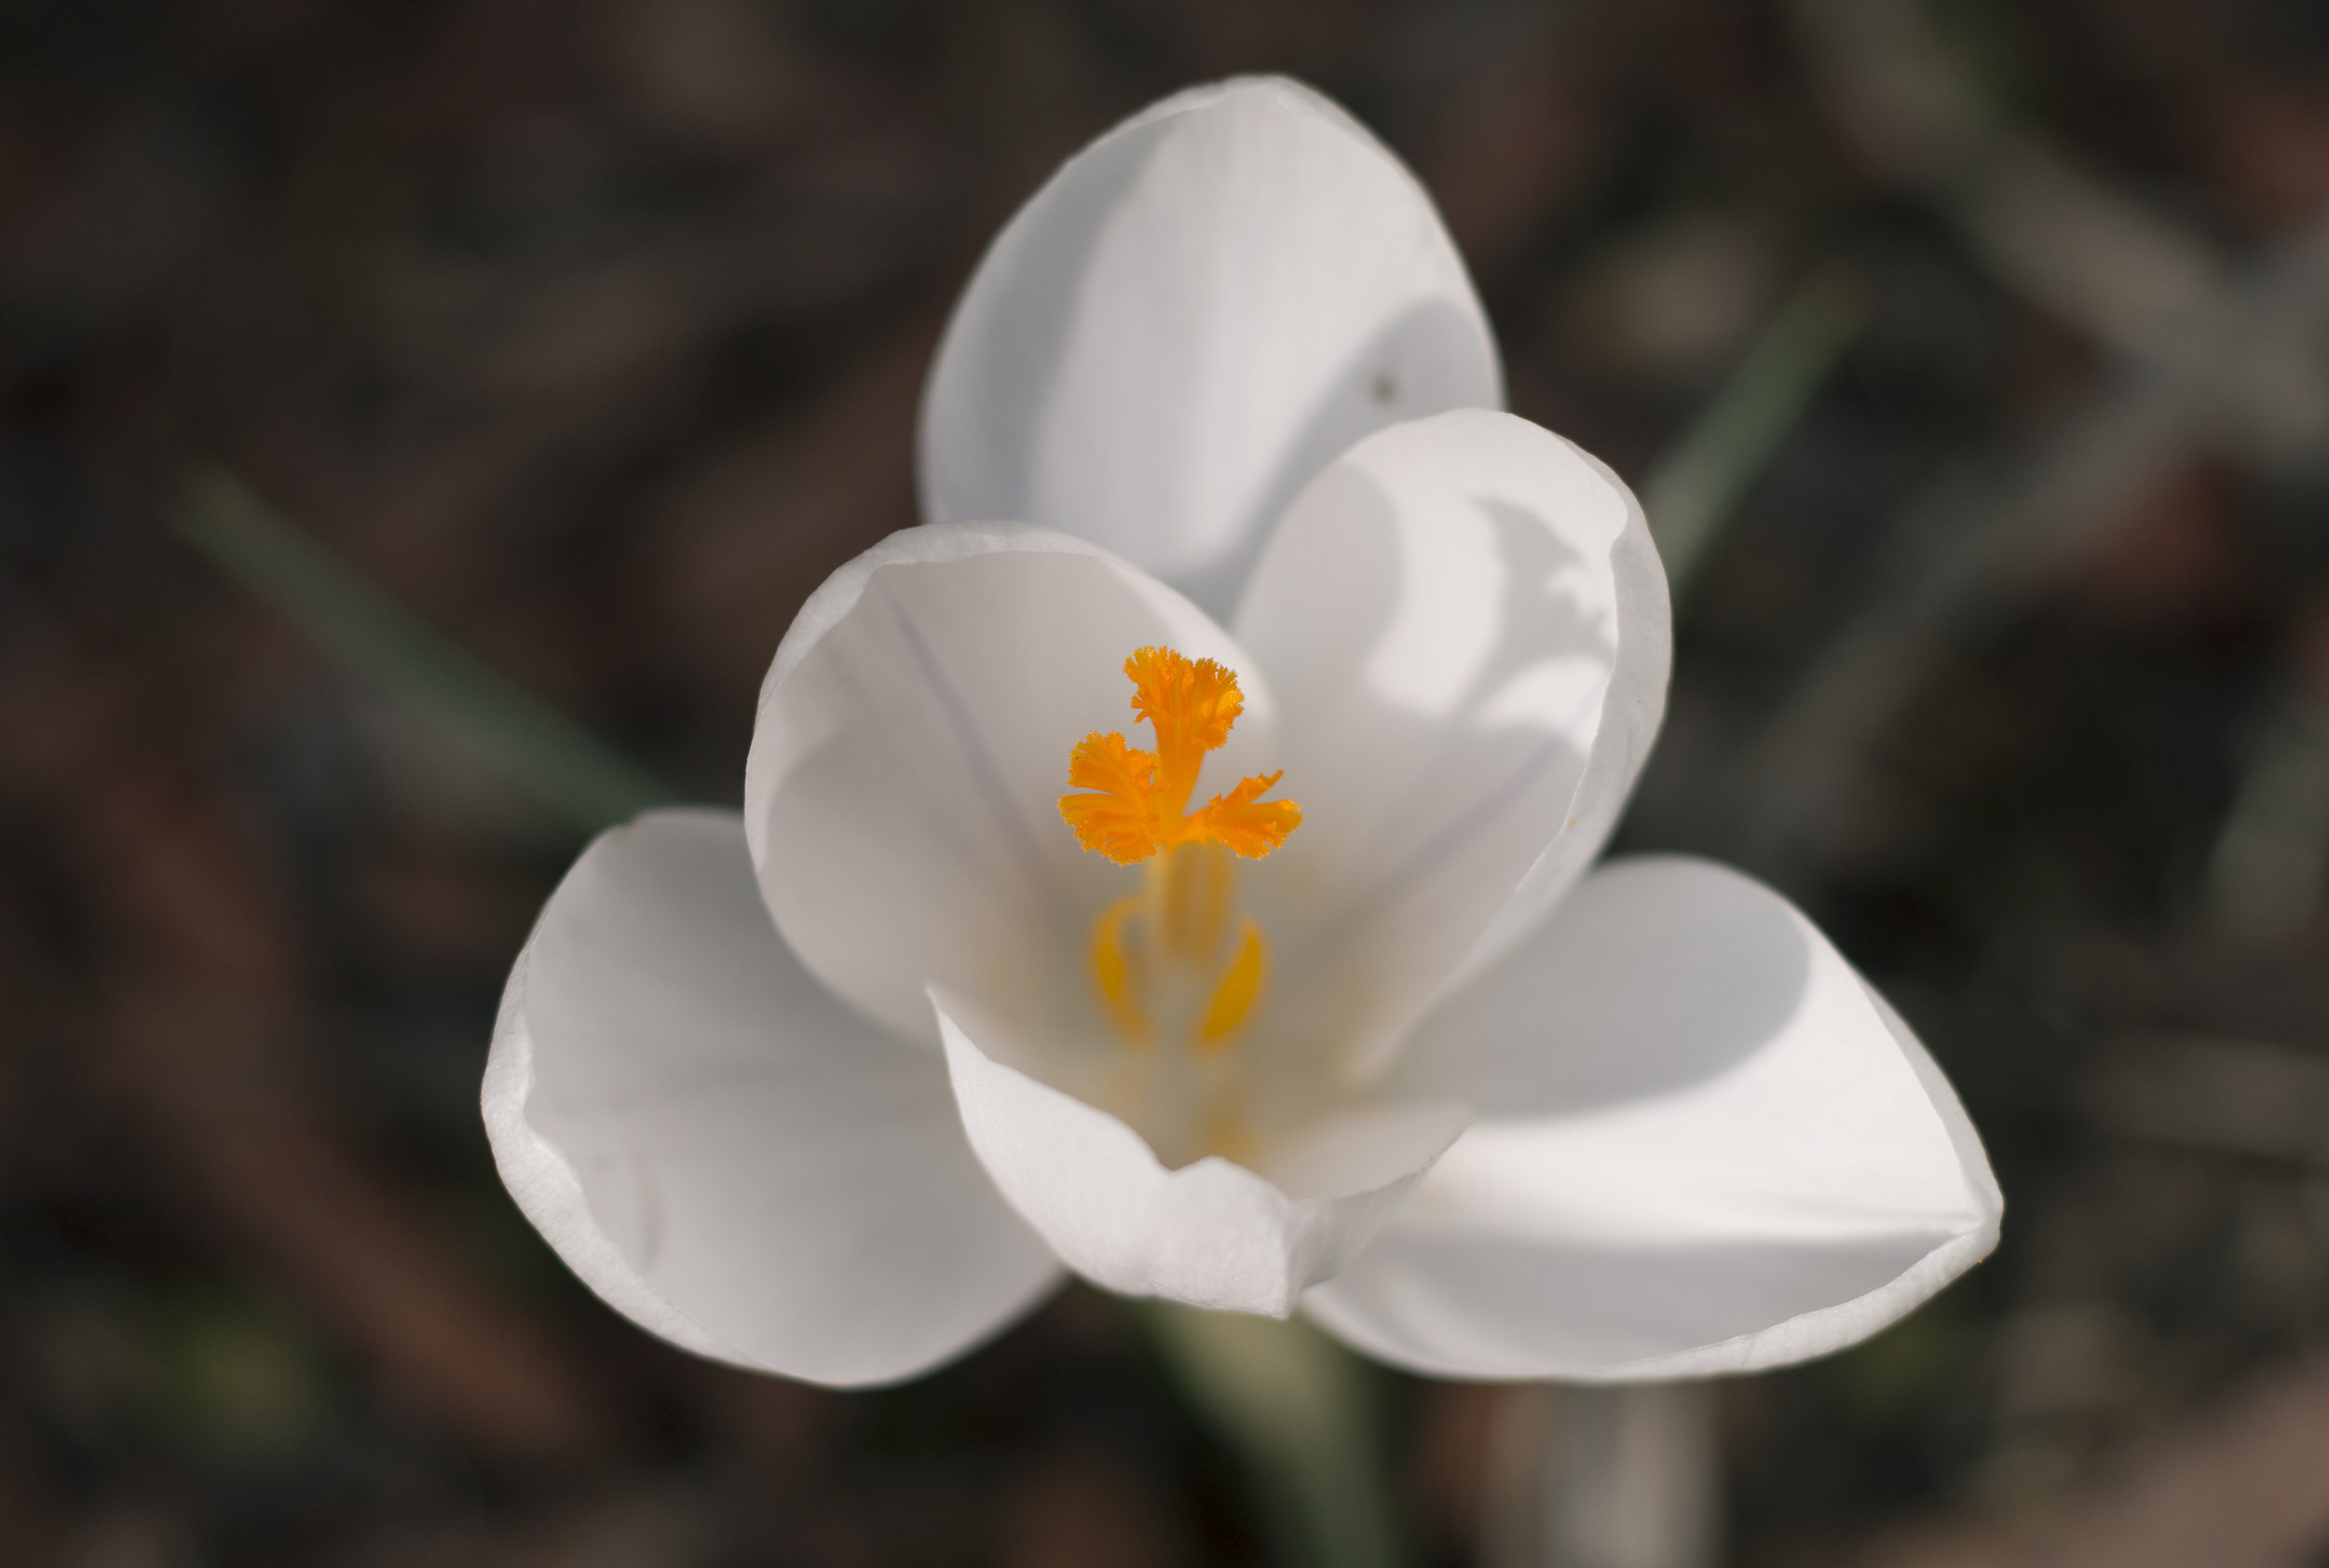 White crocus photo